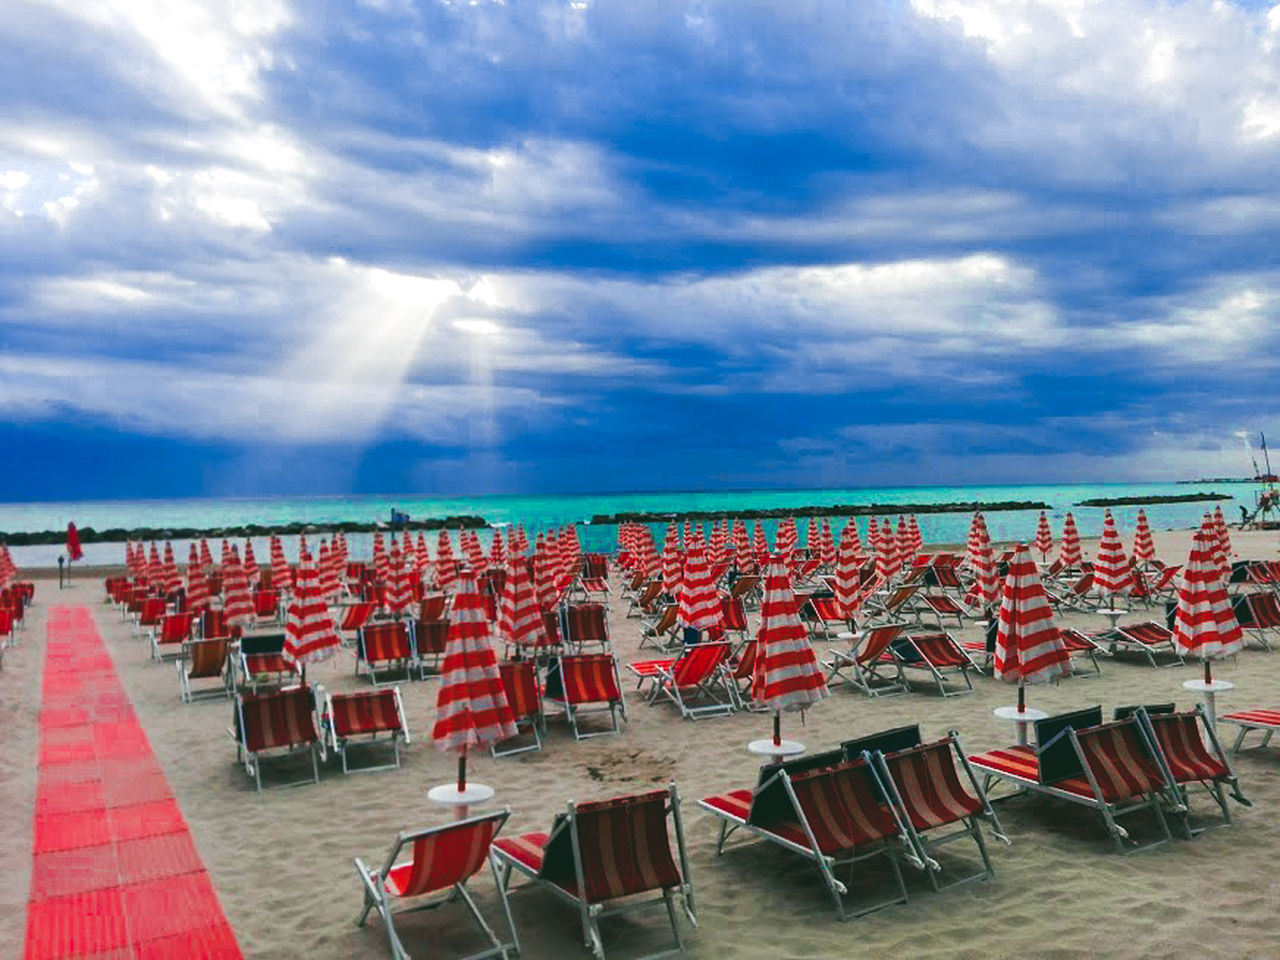 sky, chair, cloud - sky, seat, red, in a row, absence, nature, large group of objects, beach, land, water, no people, horizon, horizon over water, sea, arrangement, lounge chair, day, outdoors, order, outdoor chair